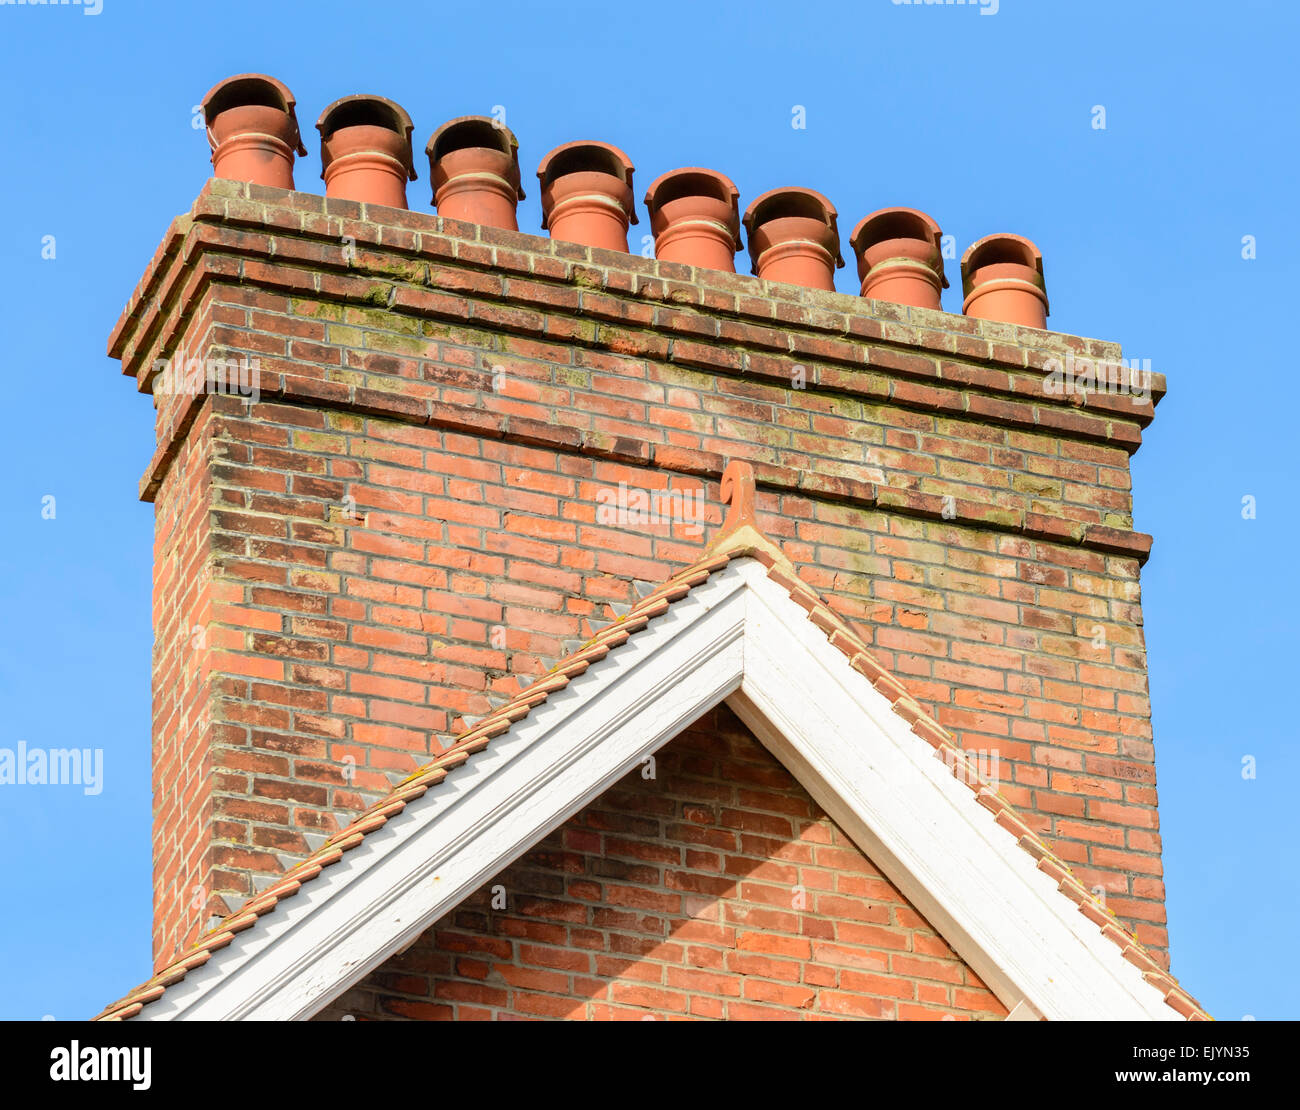 Chimney stack with 8 red chimney pots against blue sky. - Stock Image